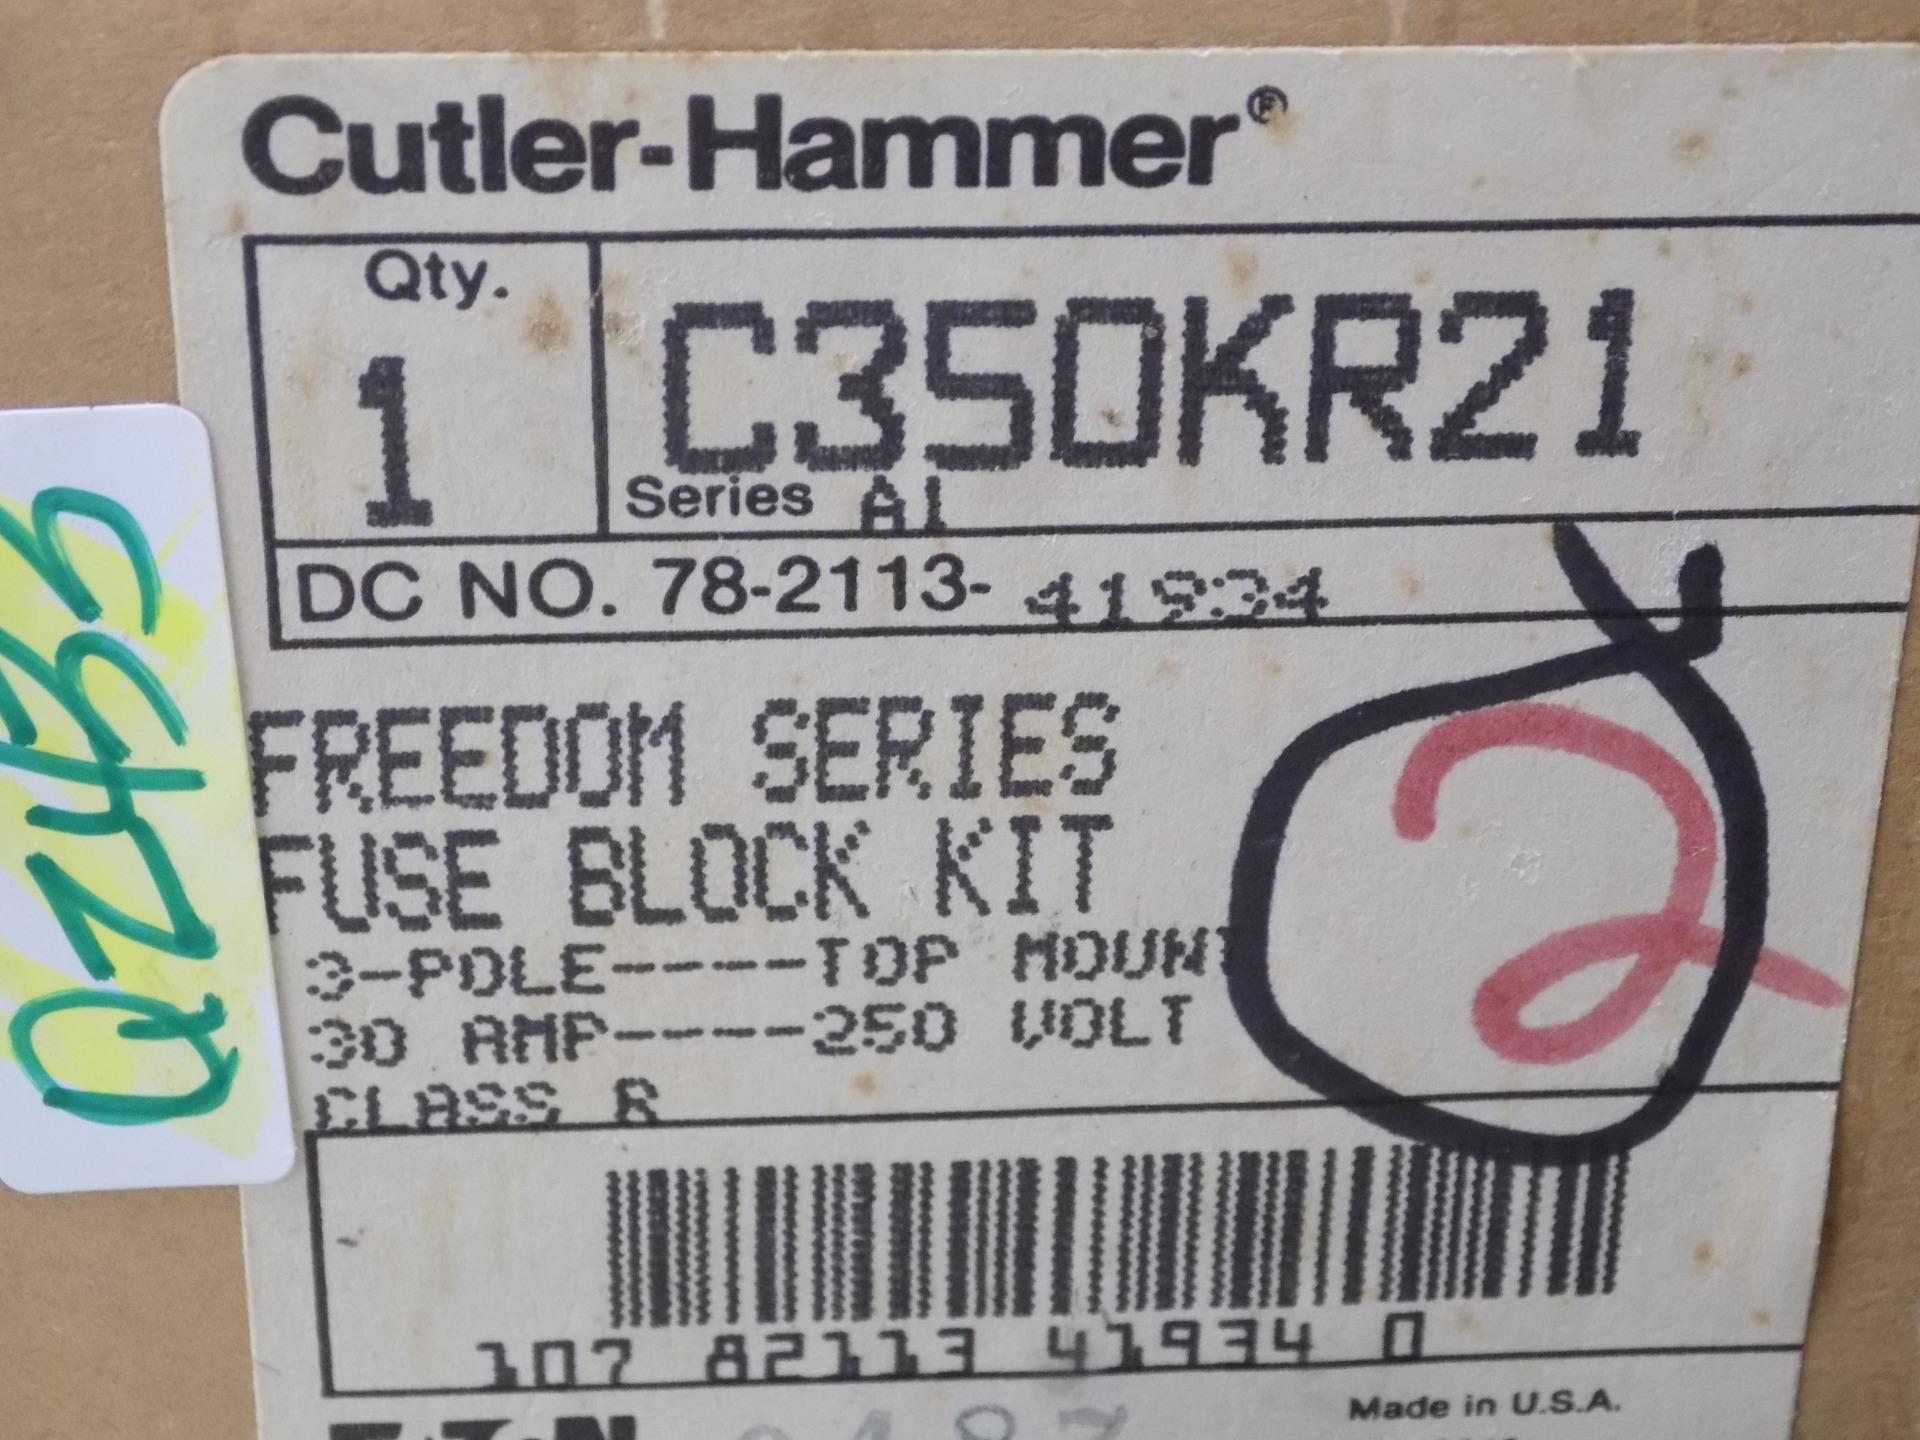 hight resolution of cutler hammer 30a 250v 3 pole freedom series fuse block kit c350kr21 series a1